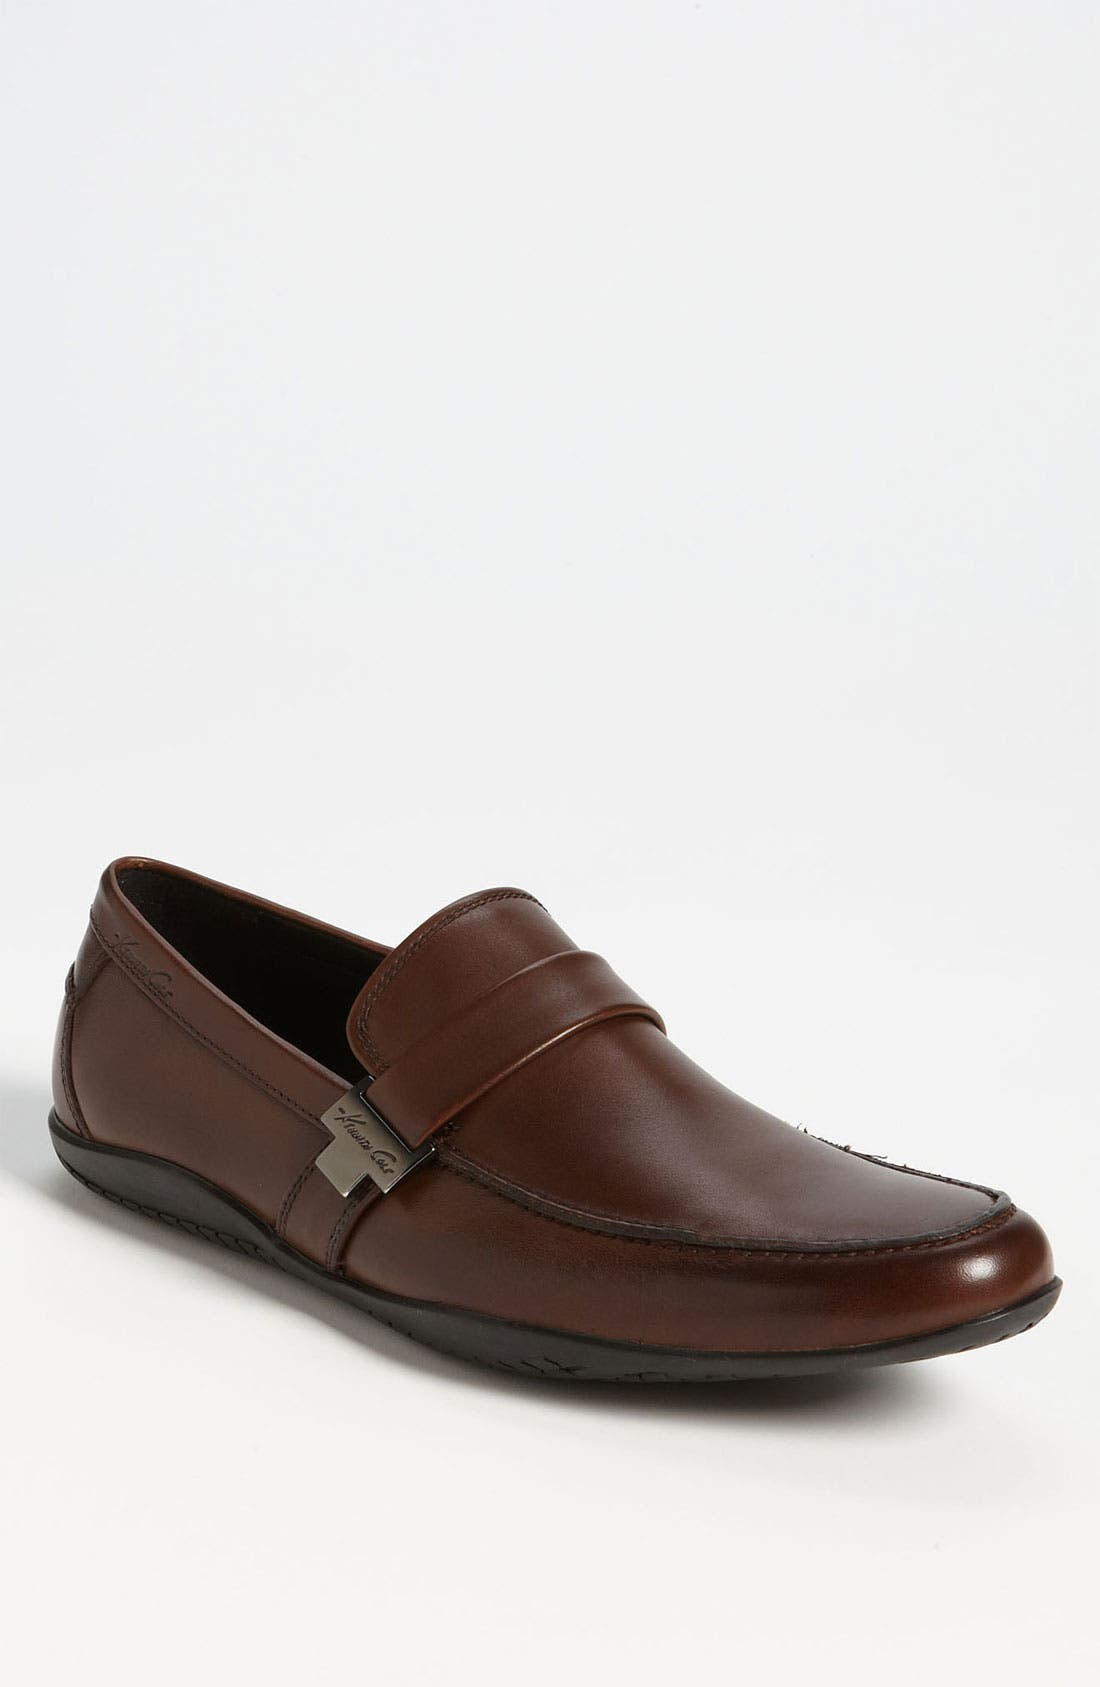 Alternate Image 1 Selected - Kenneth Cole New York 'Homeword' Loafer